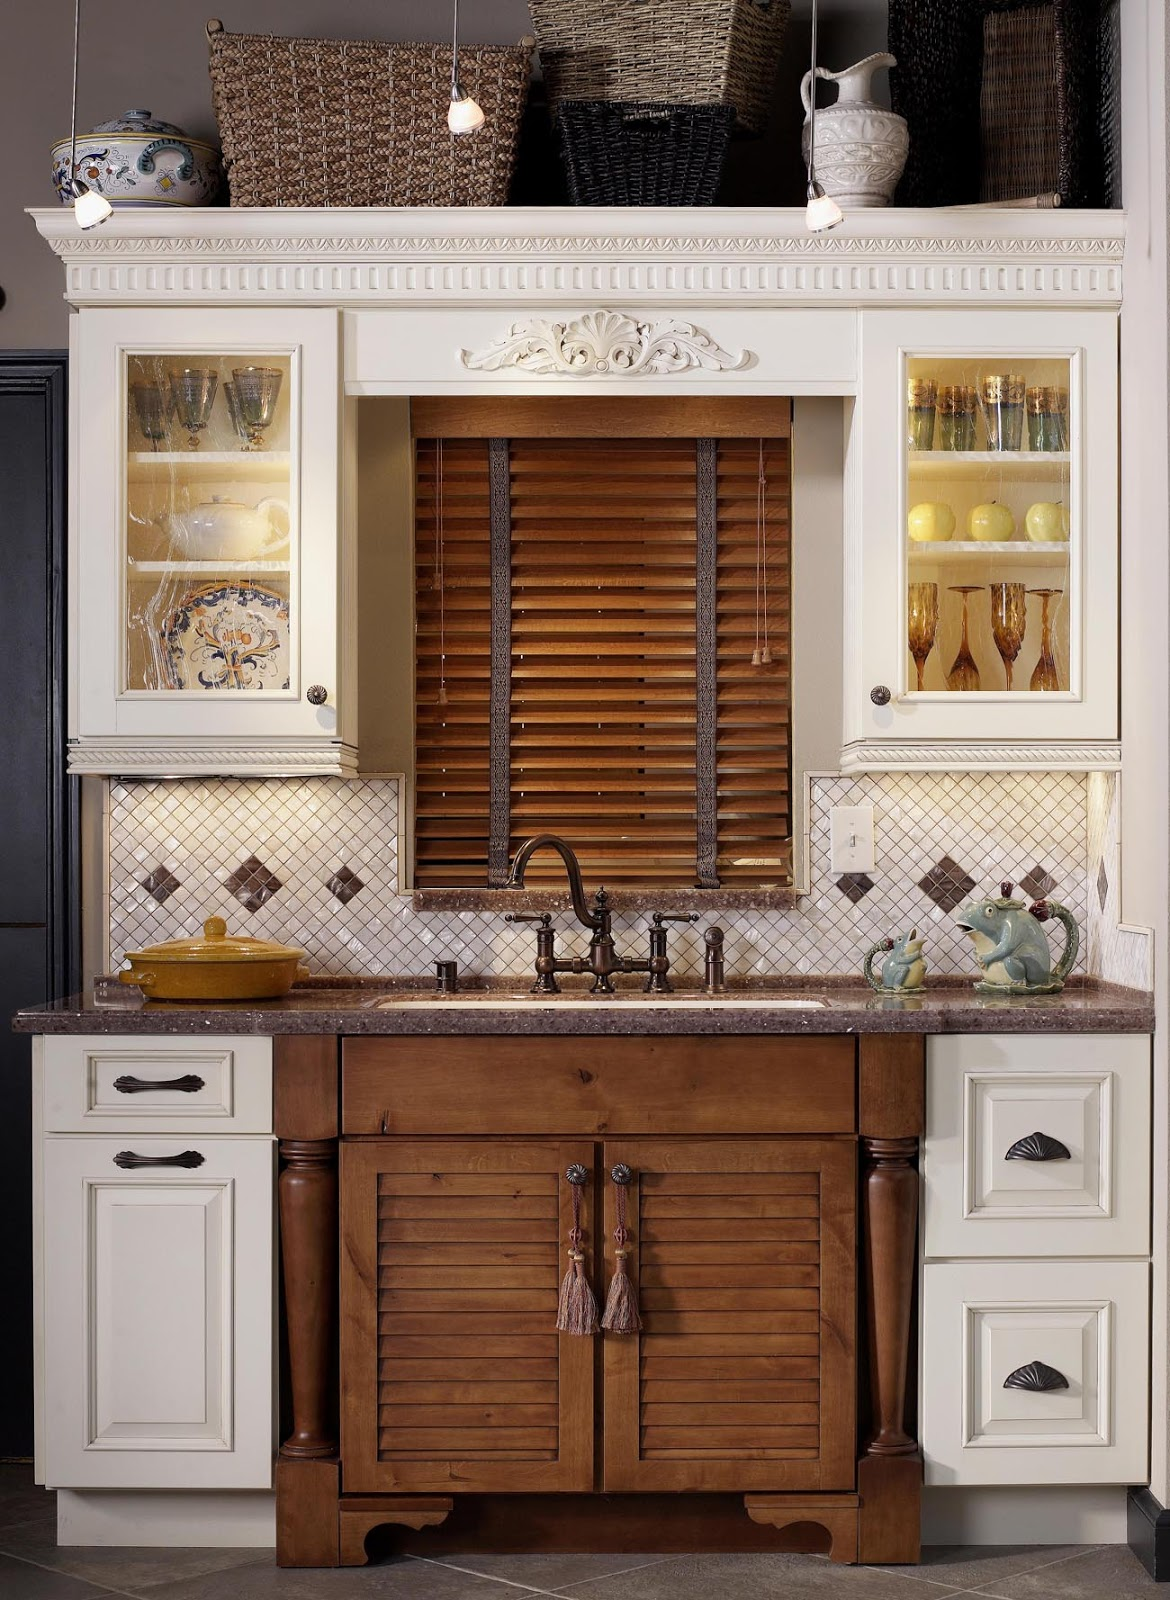 Kitchen And Residential Design Tricks To Dress Up Your Cabinets